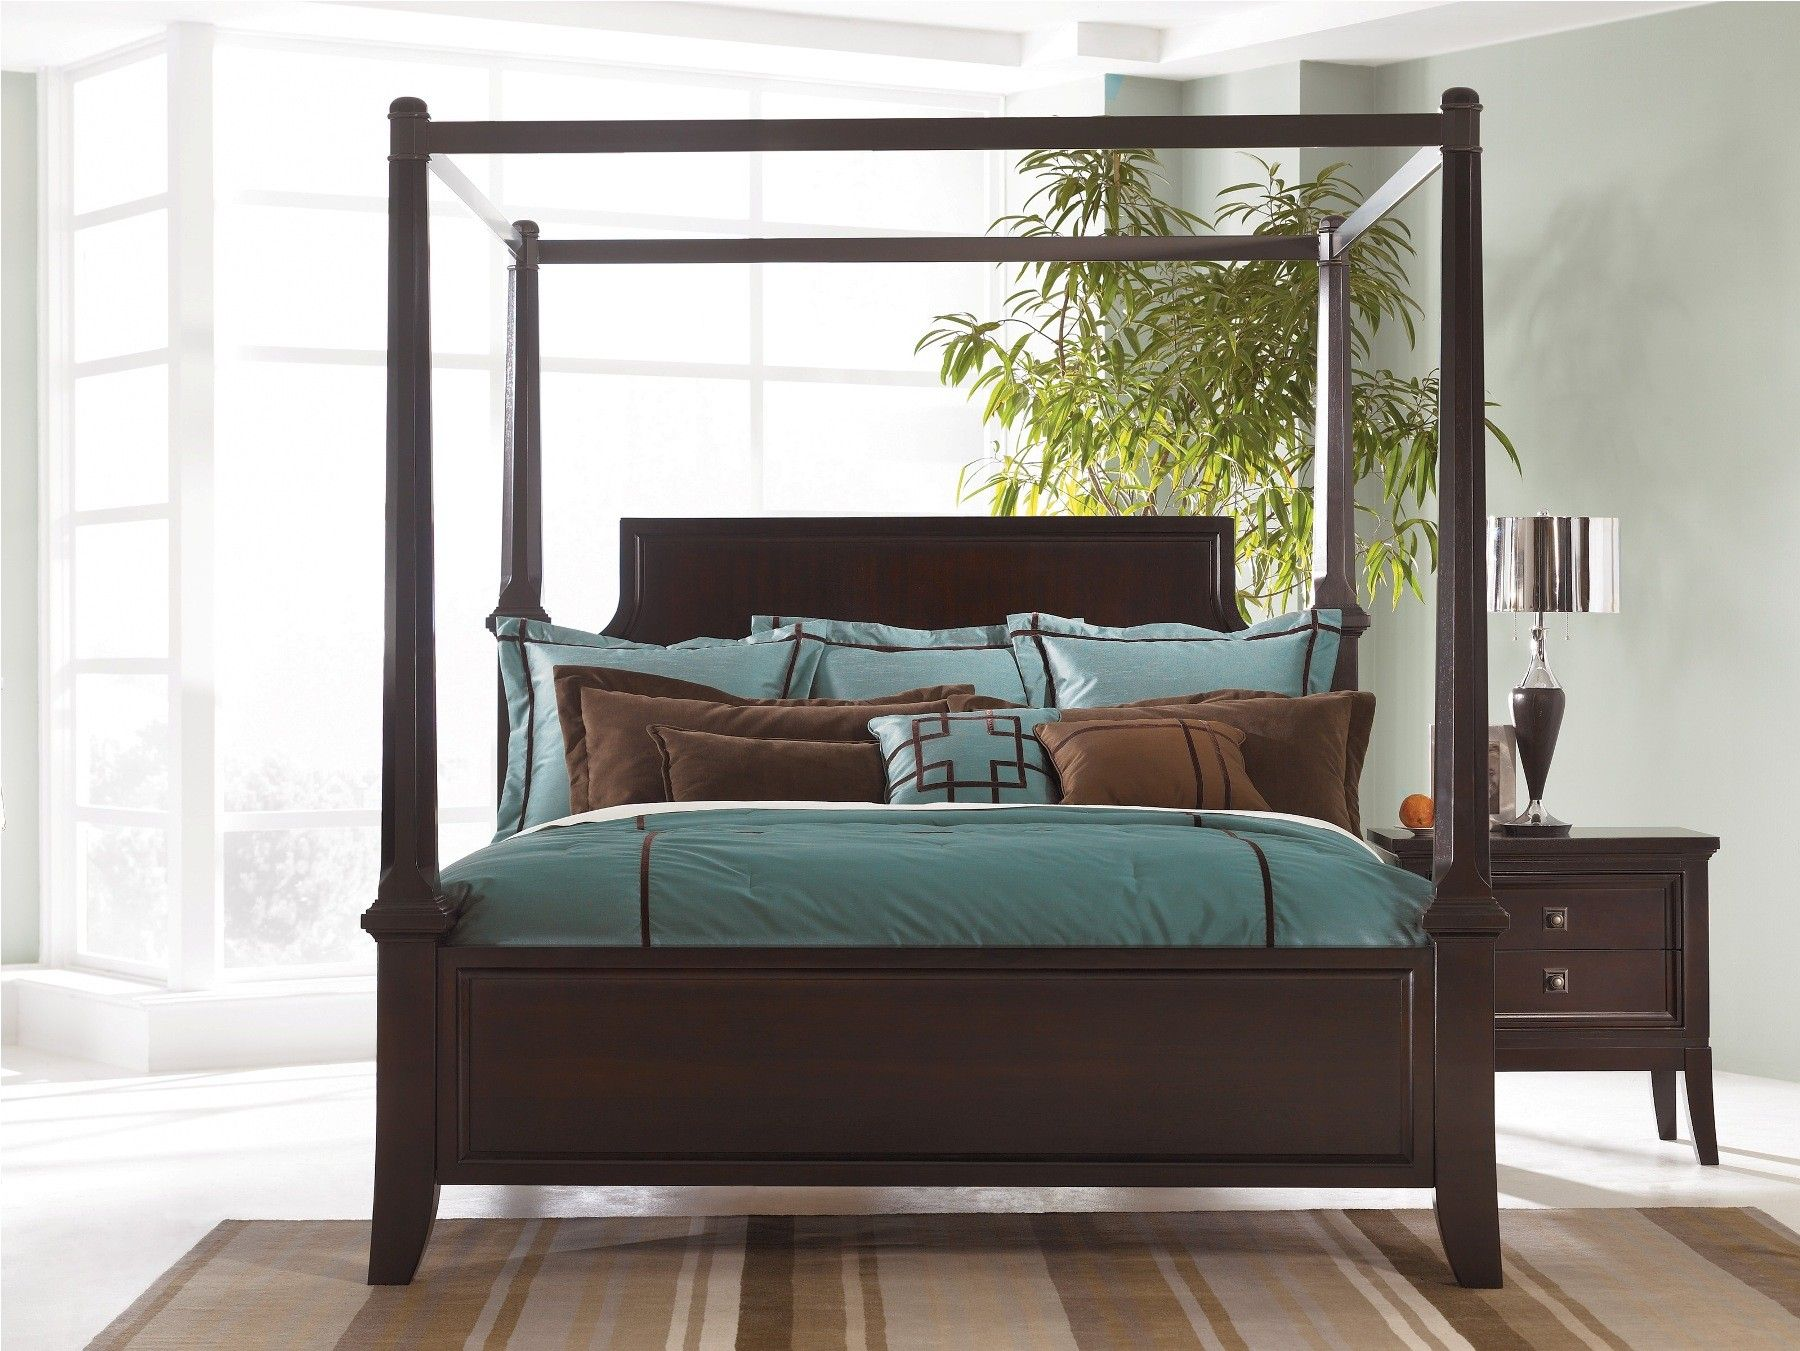 California King Size Platform Bed with canopy | ... Cal. King Poster Canopy : ashley canopy king bed - memphite.com